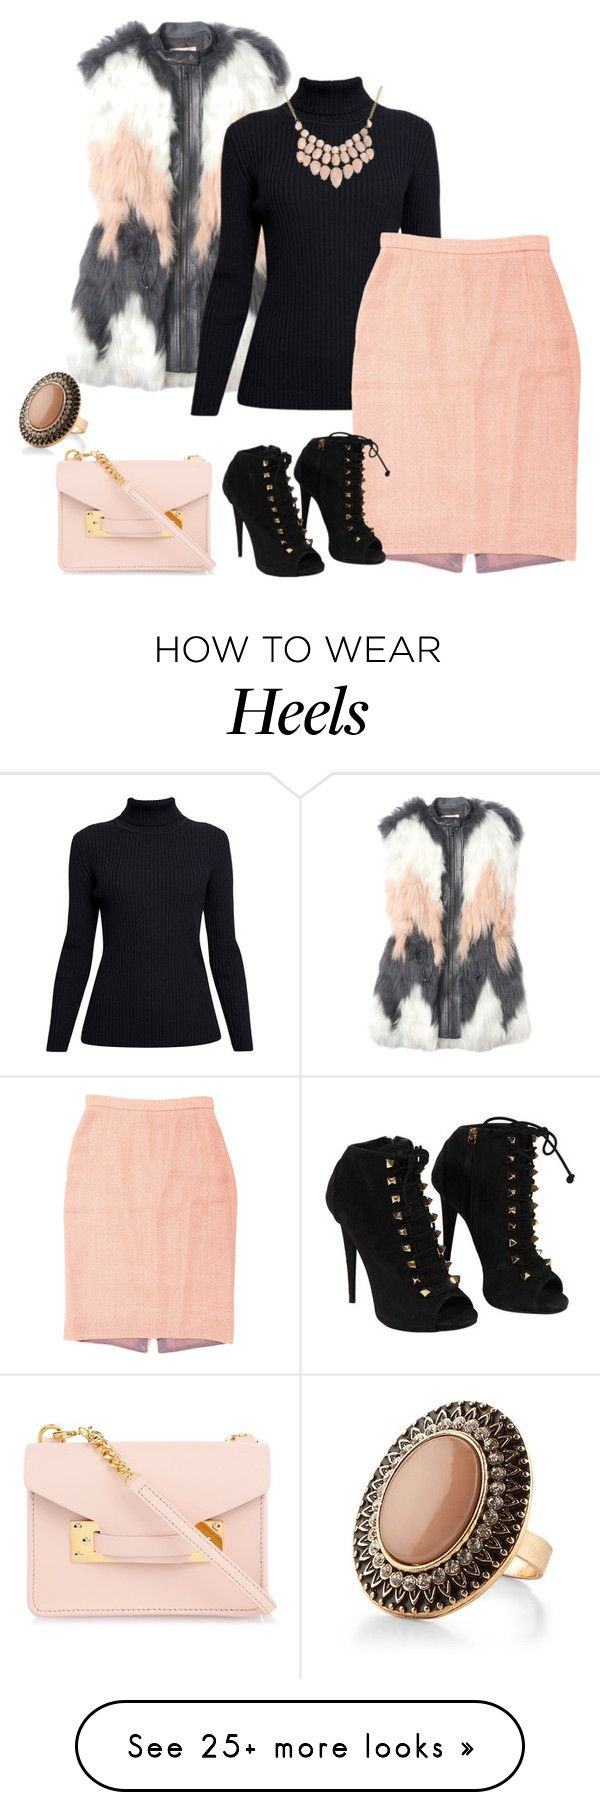 """""""outfit 2933"""" by natalyag on Polyvore featuring Rebecca Taylor, Rumour London, Prada, Sophie Hulme and Giuseppe Zanotti"""